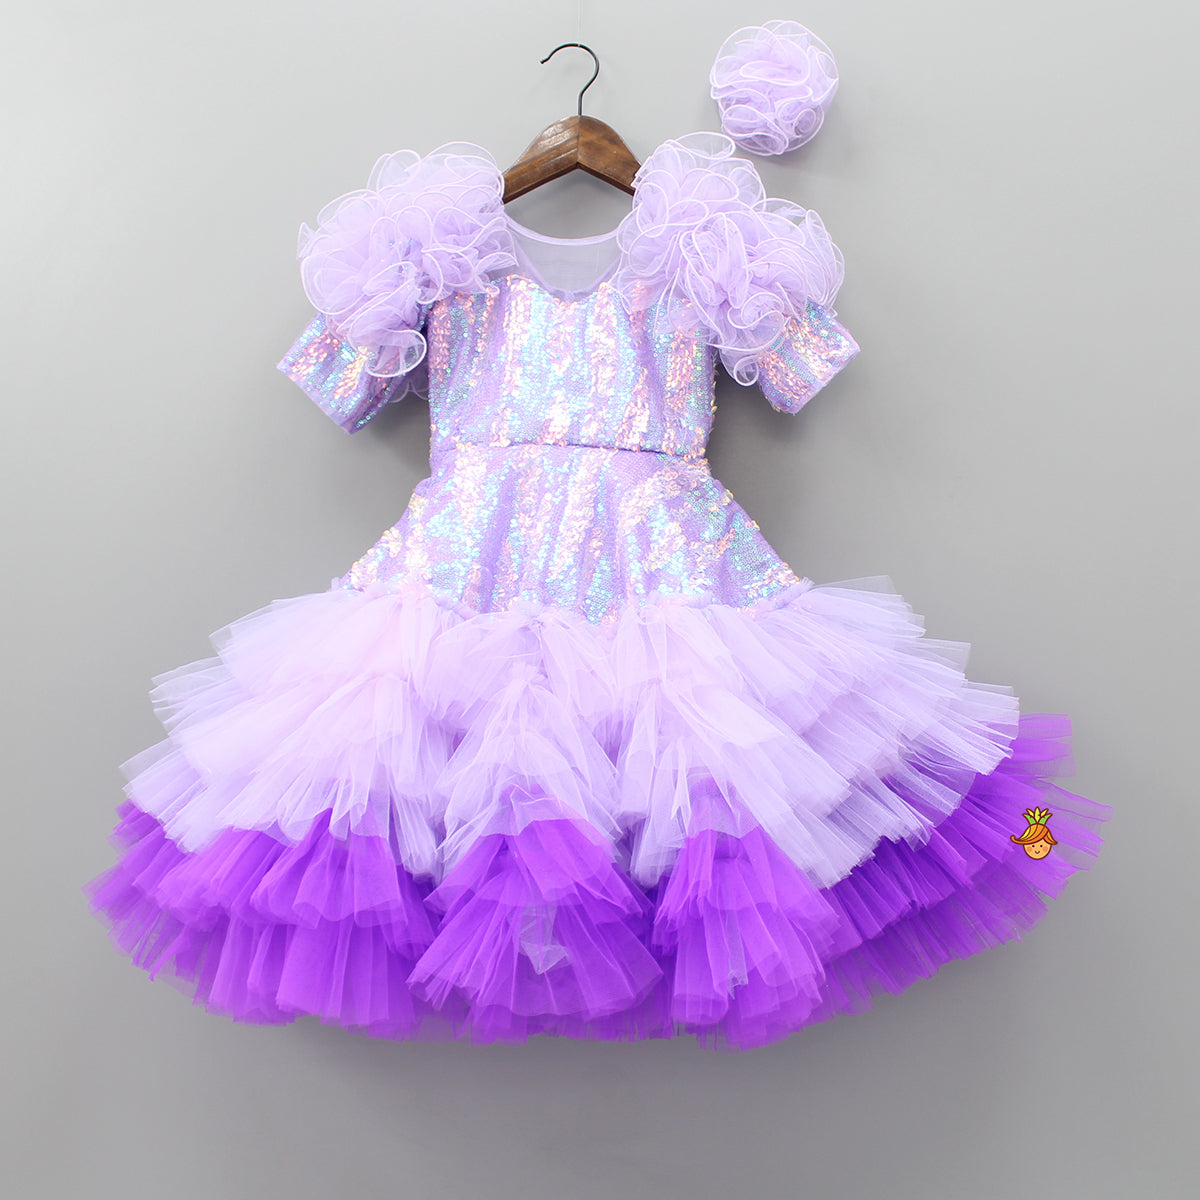 Pre Order: Sequin and Ruffle Frill Gown With Hair Clip